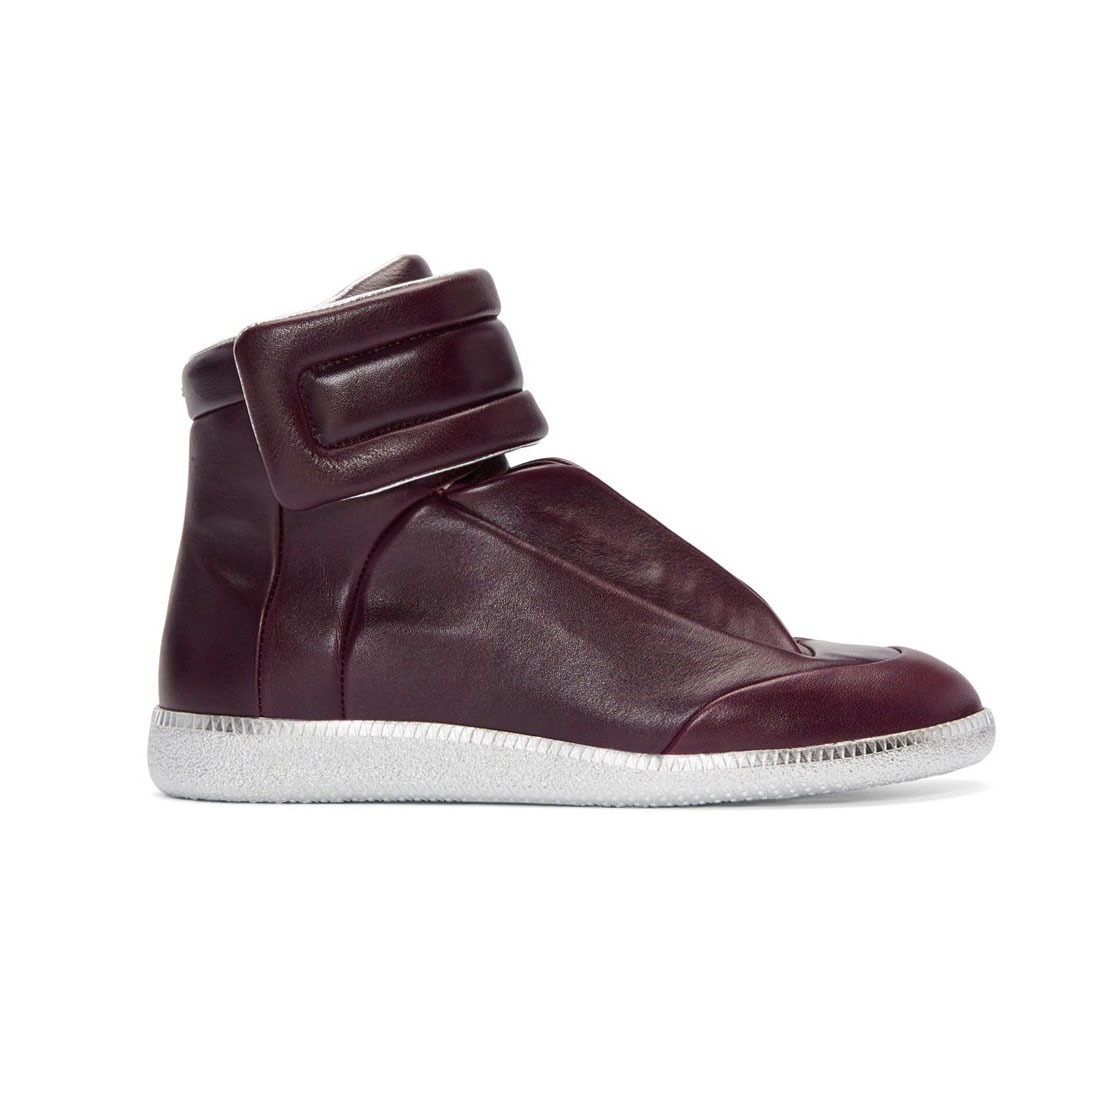 Maison Margiela Future High Top Sneaker